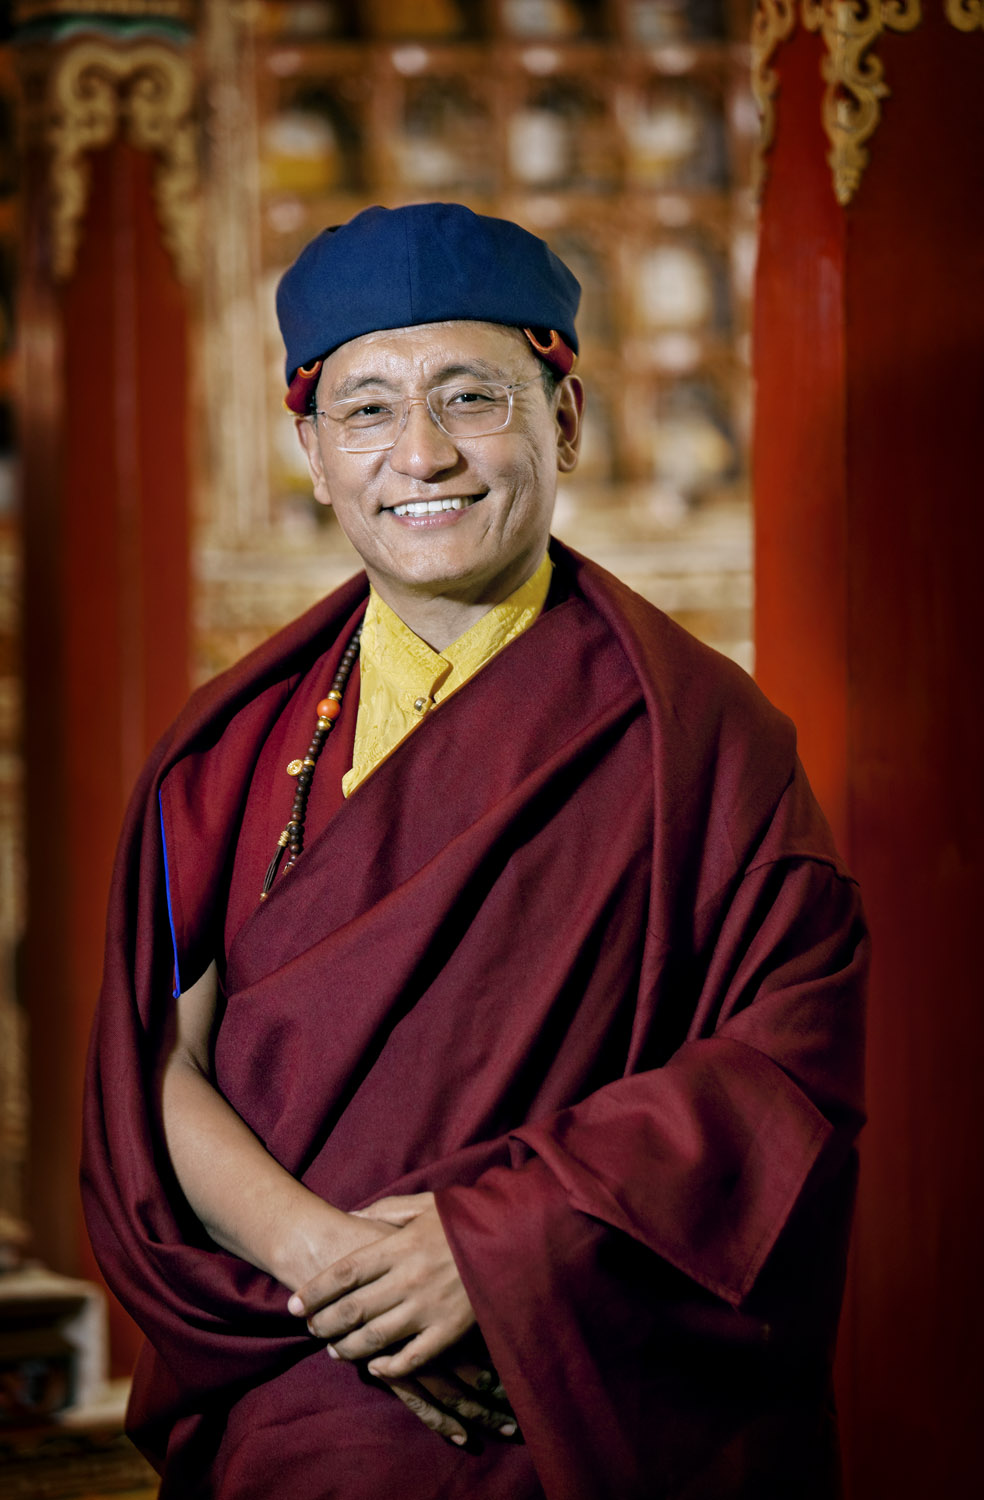 His Holiness the Gyalwang Drukpa, Hemis Gompa, Ladakh, India